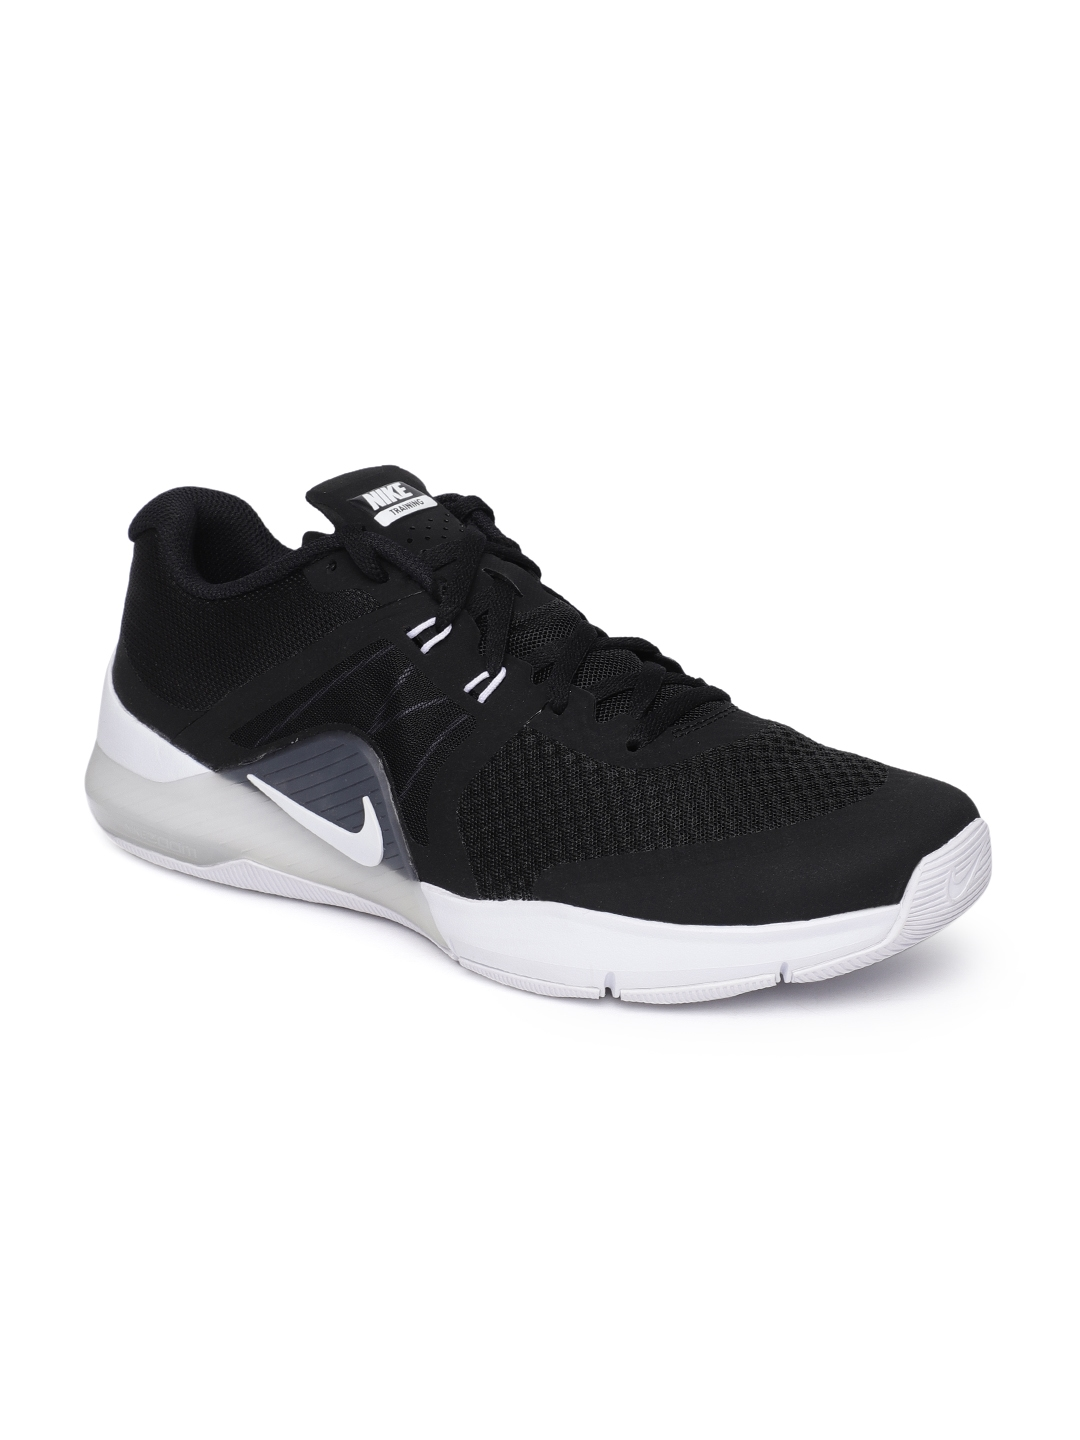 8cef0dc7510a3 Buy Nike Men Zoom Train Complete 2 Black Training Shoes - Sports ...